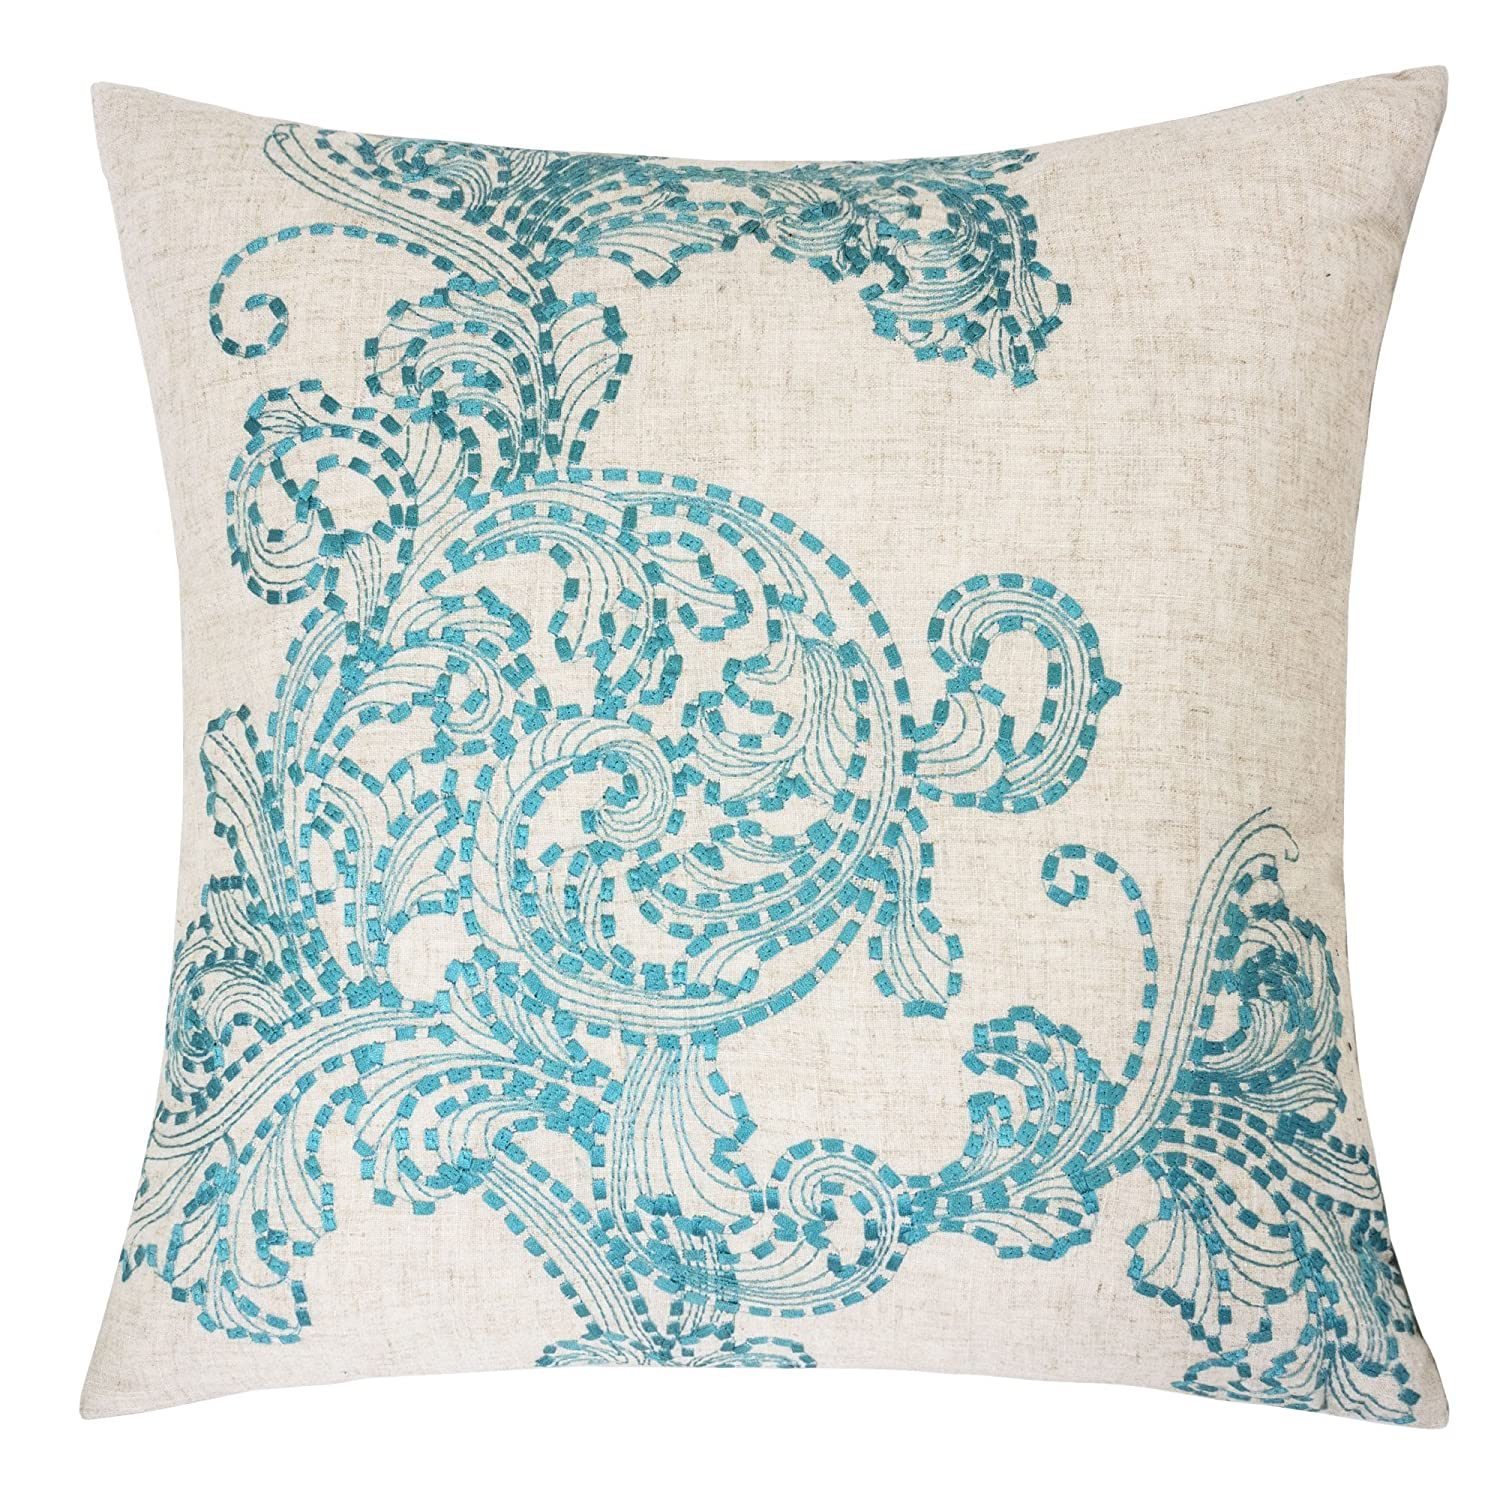 Amazon.com  Homey Cozy Embroidered Linen Throw Pillow Cover ... fc19cef89845